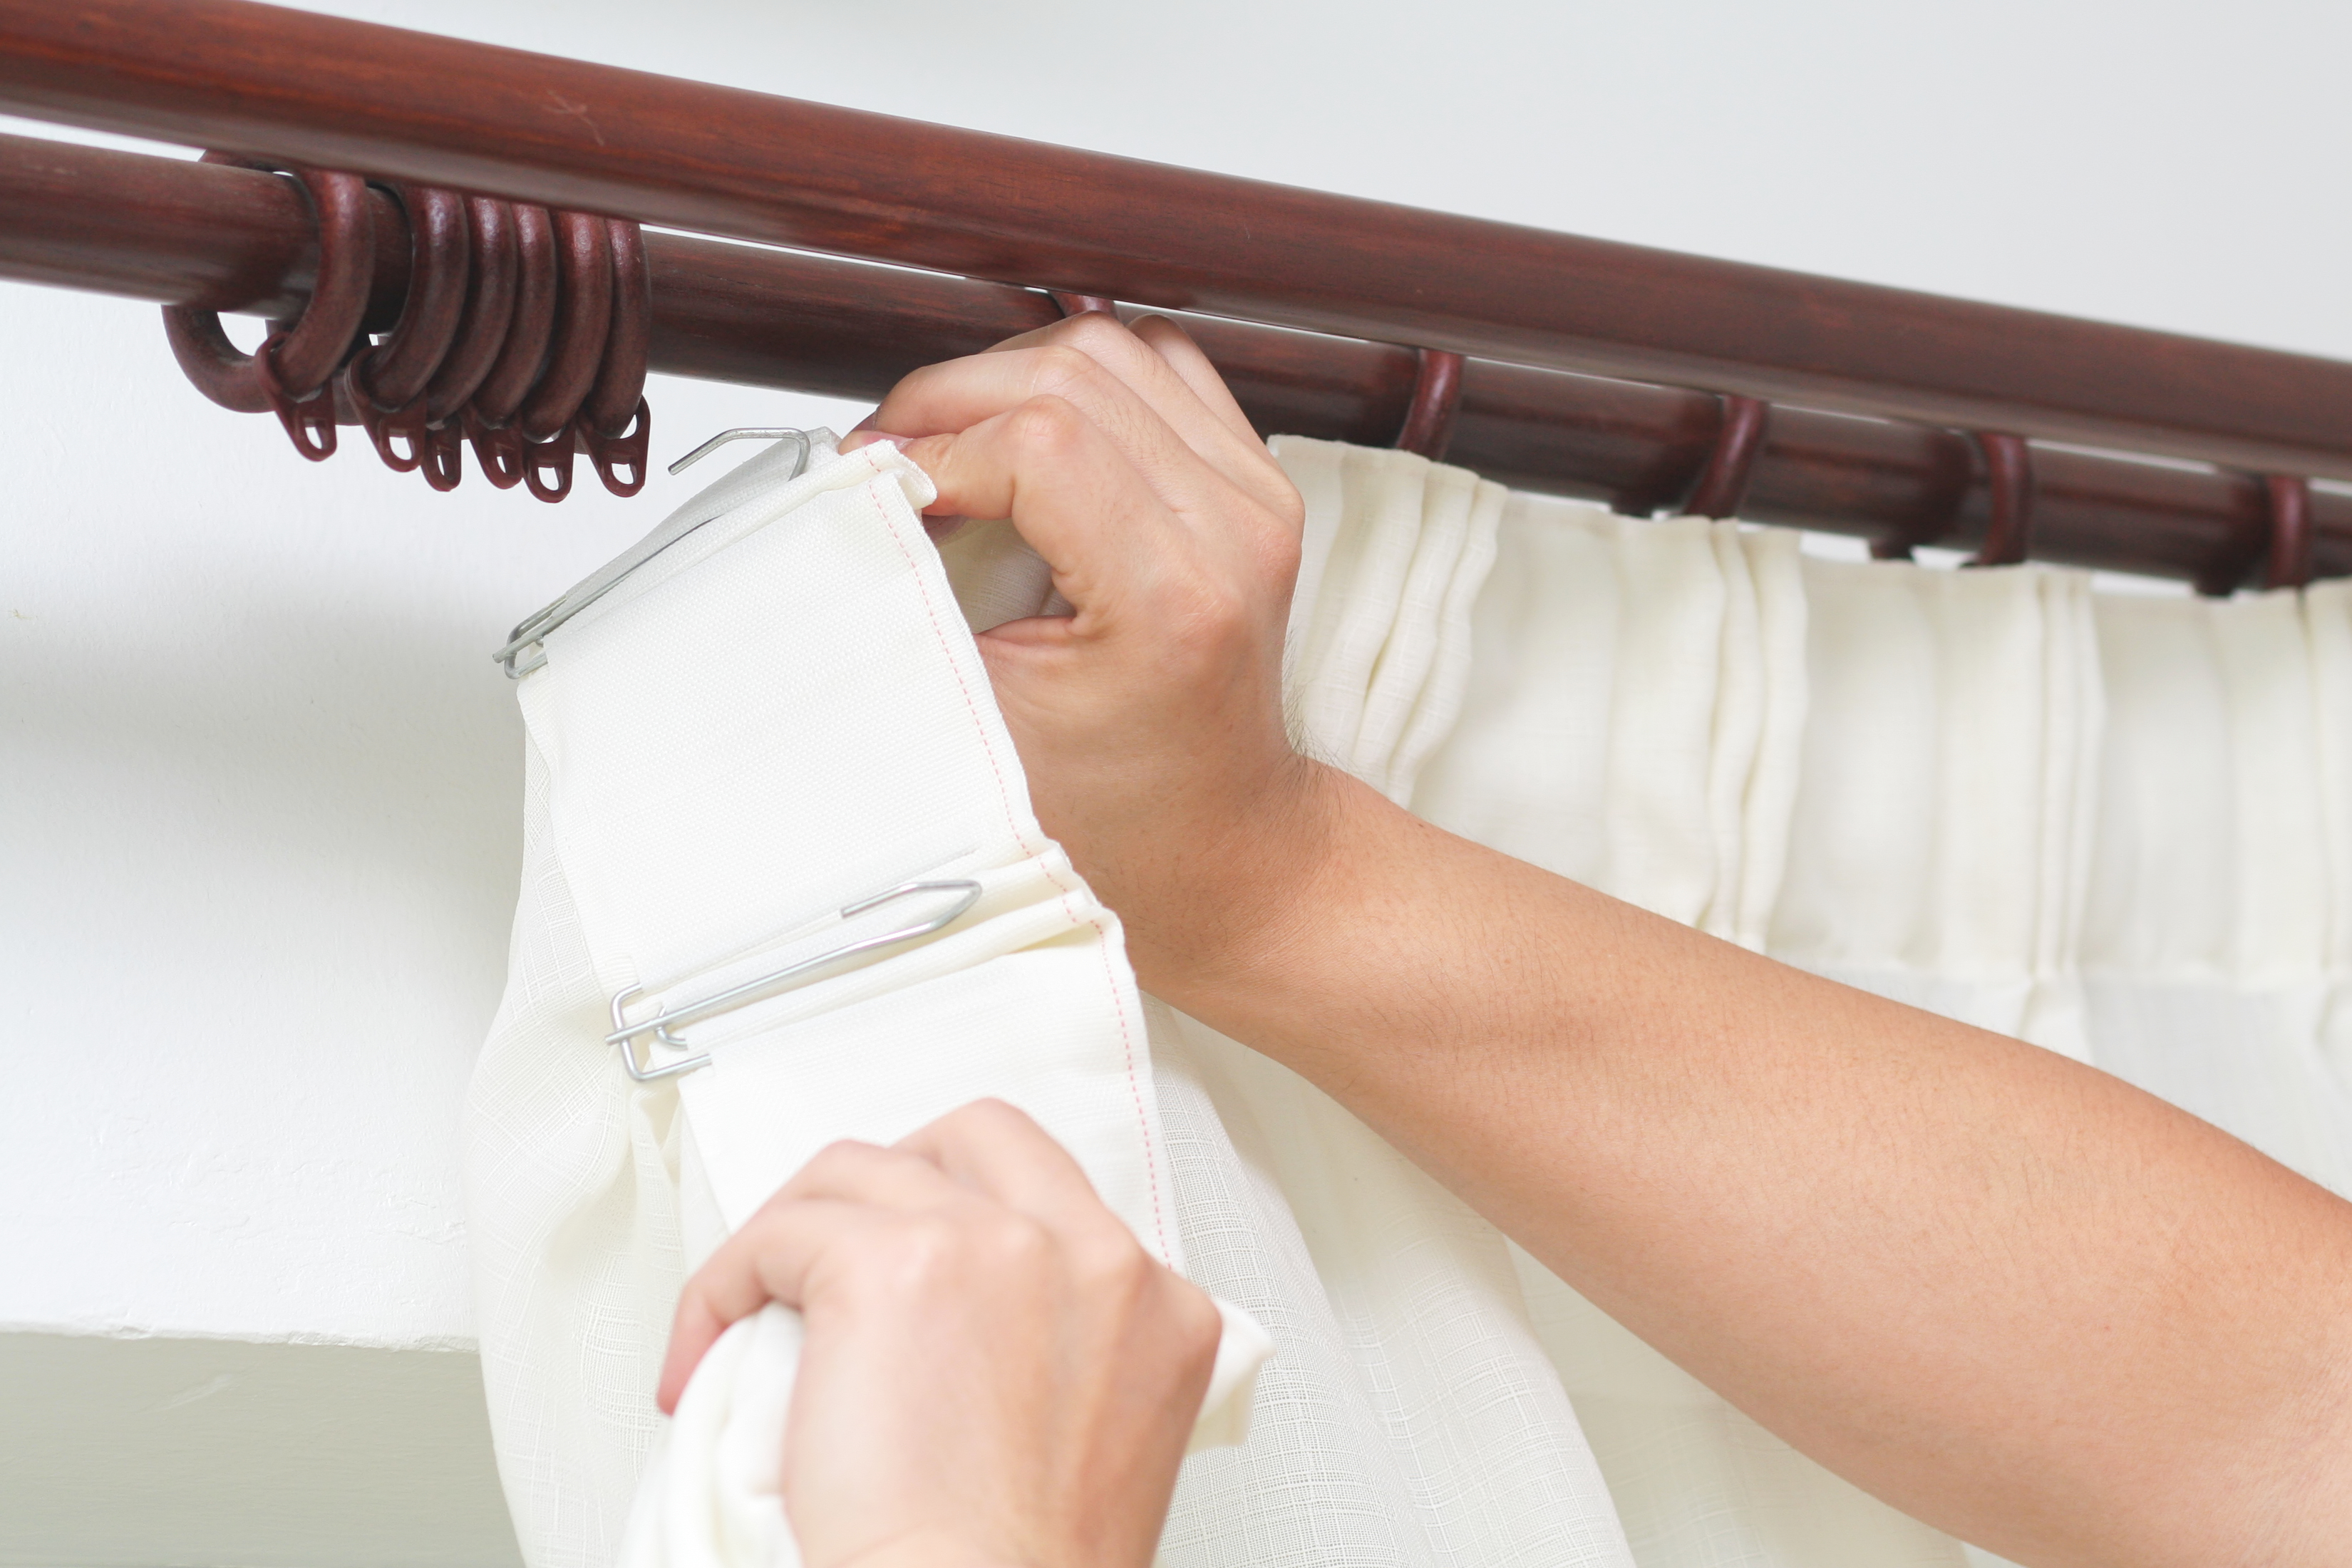 How To Choose The Curtain Rod Diameter Size For A Grommet Home